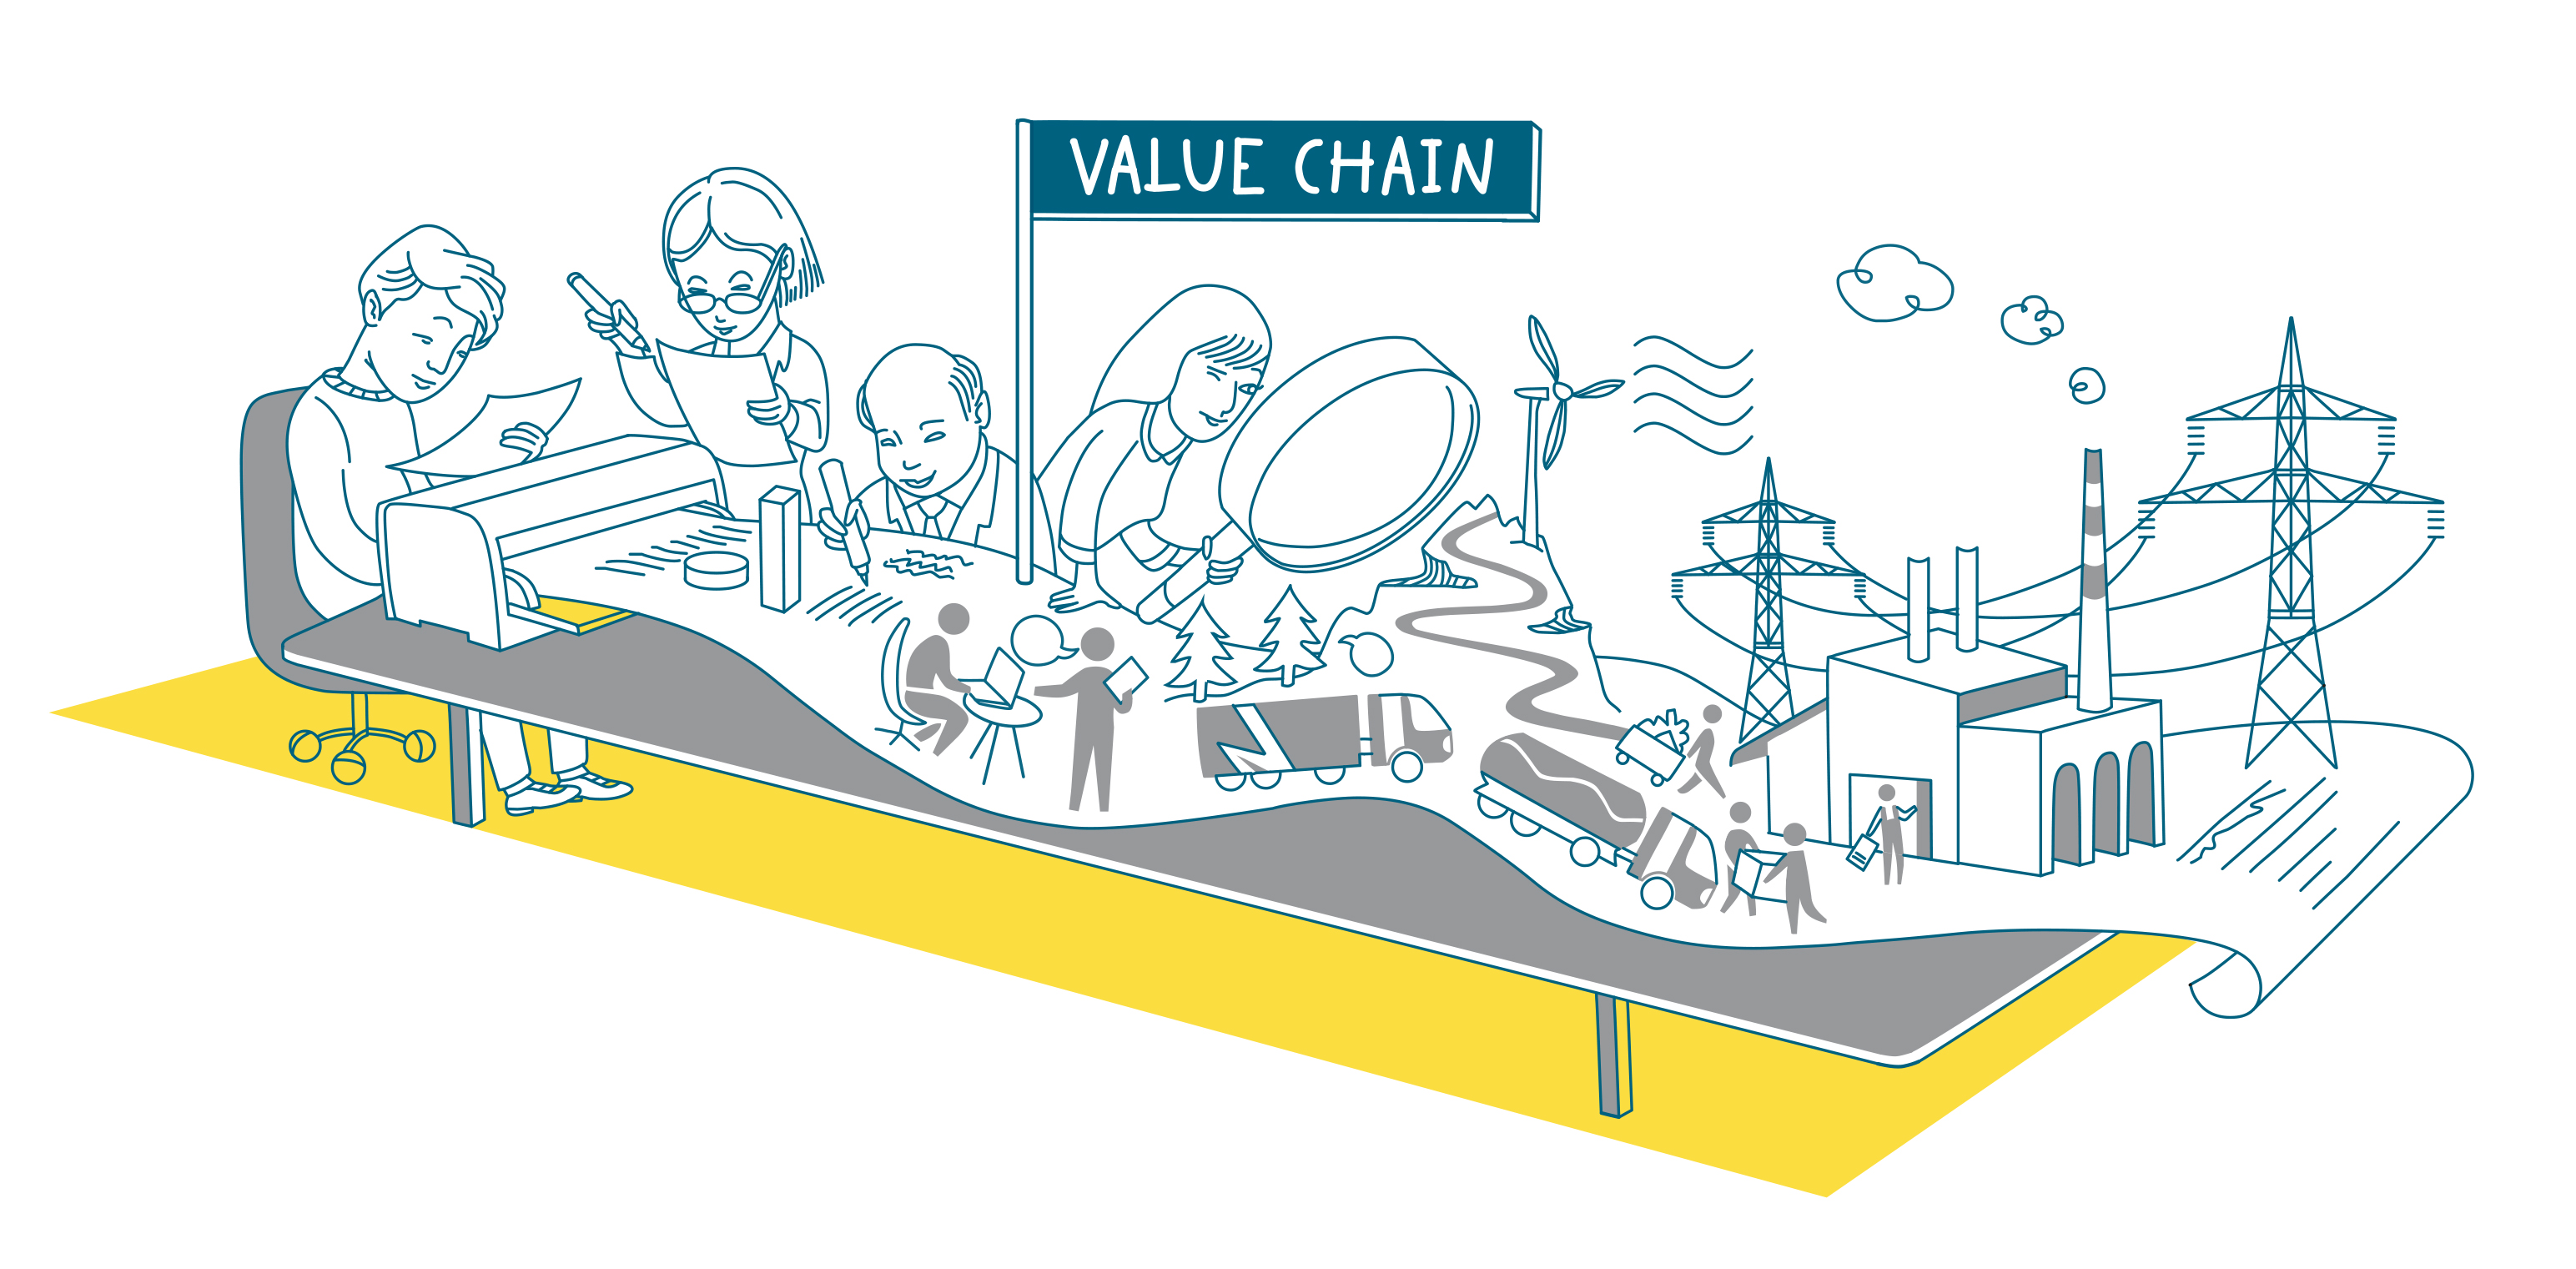 r value chain